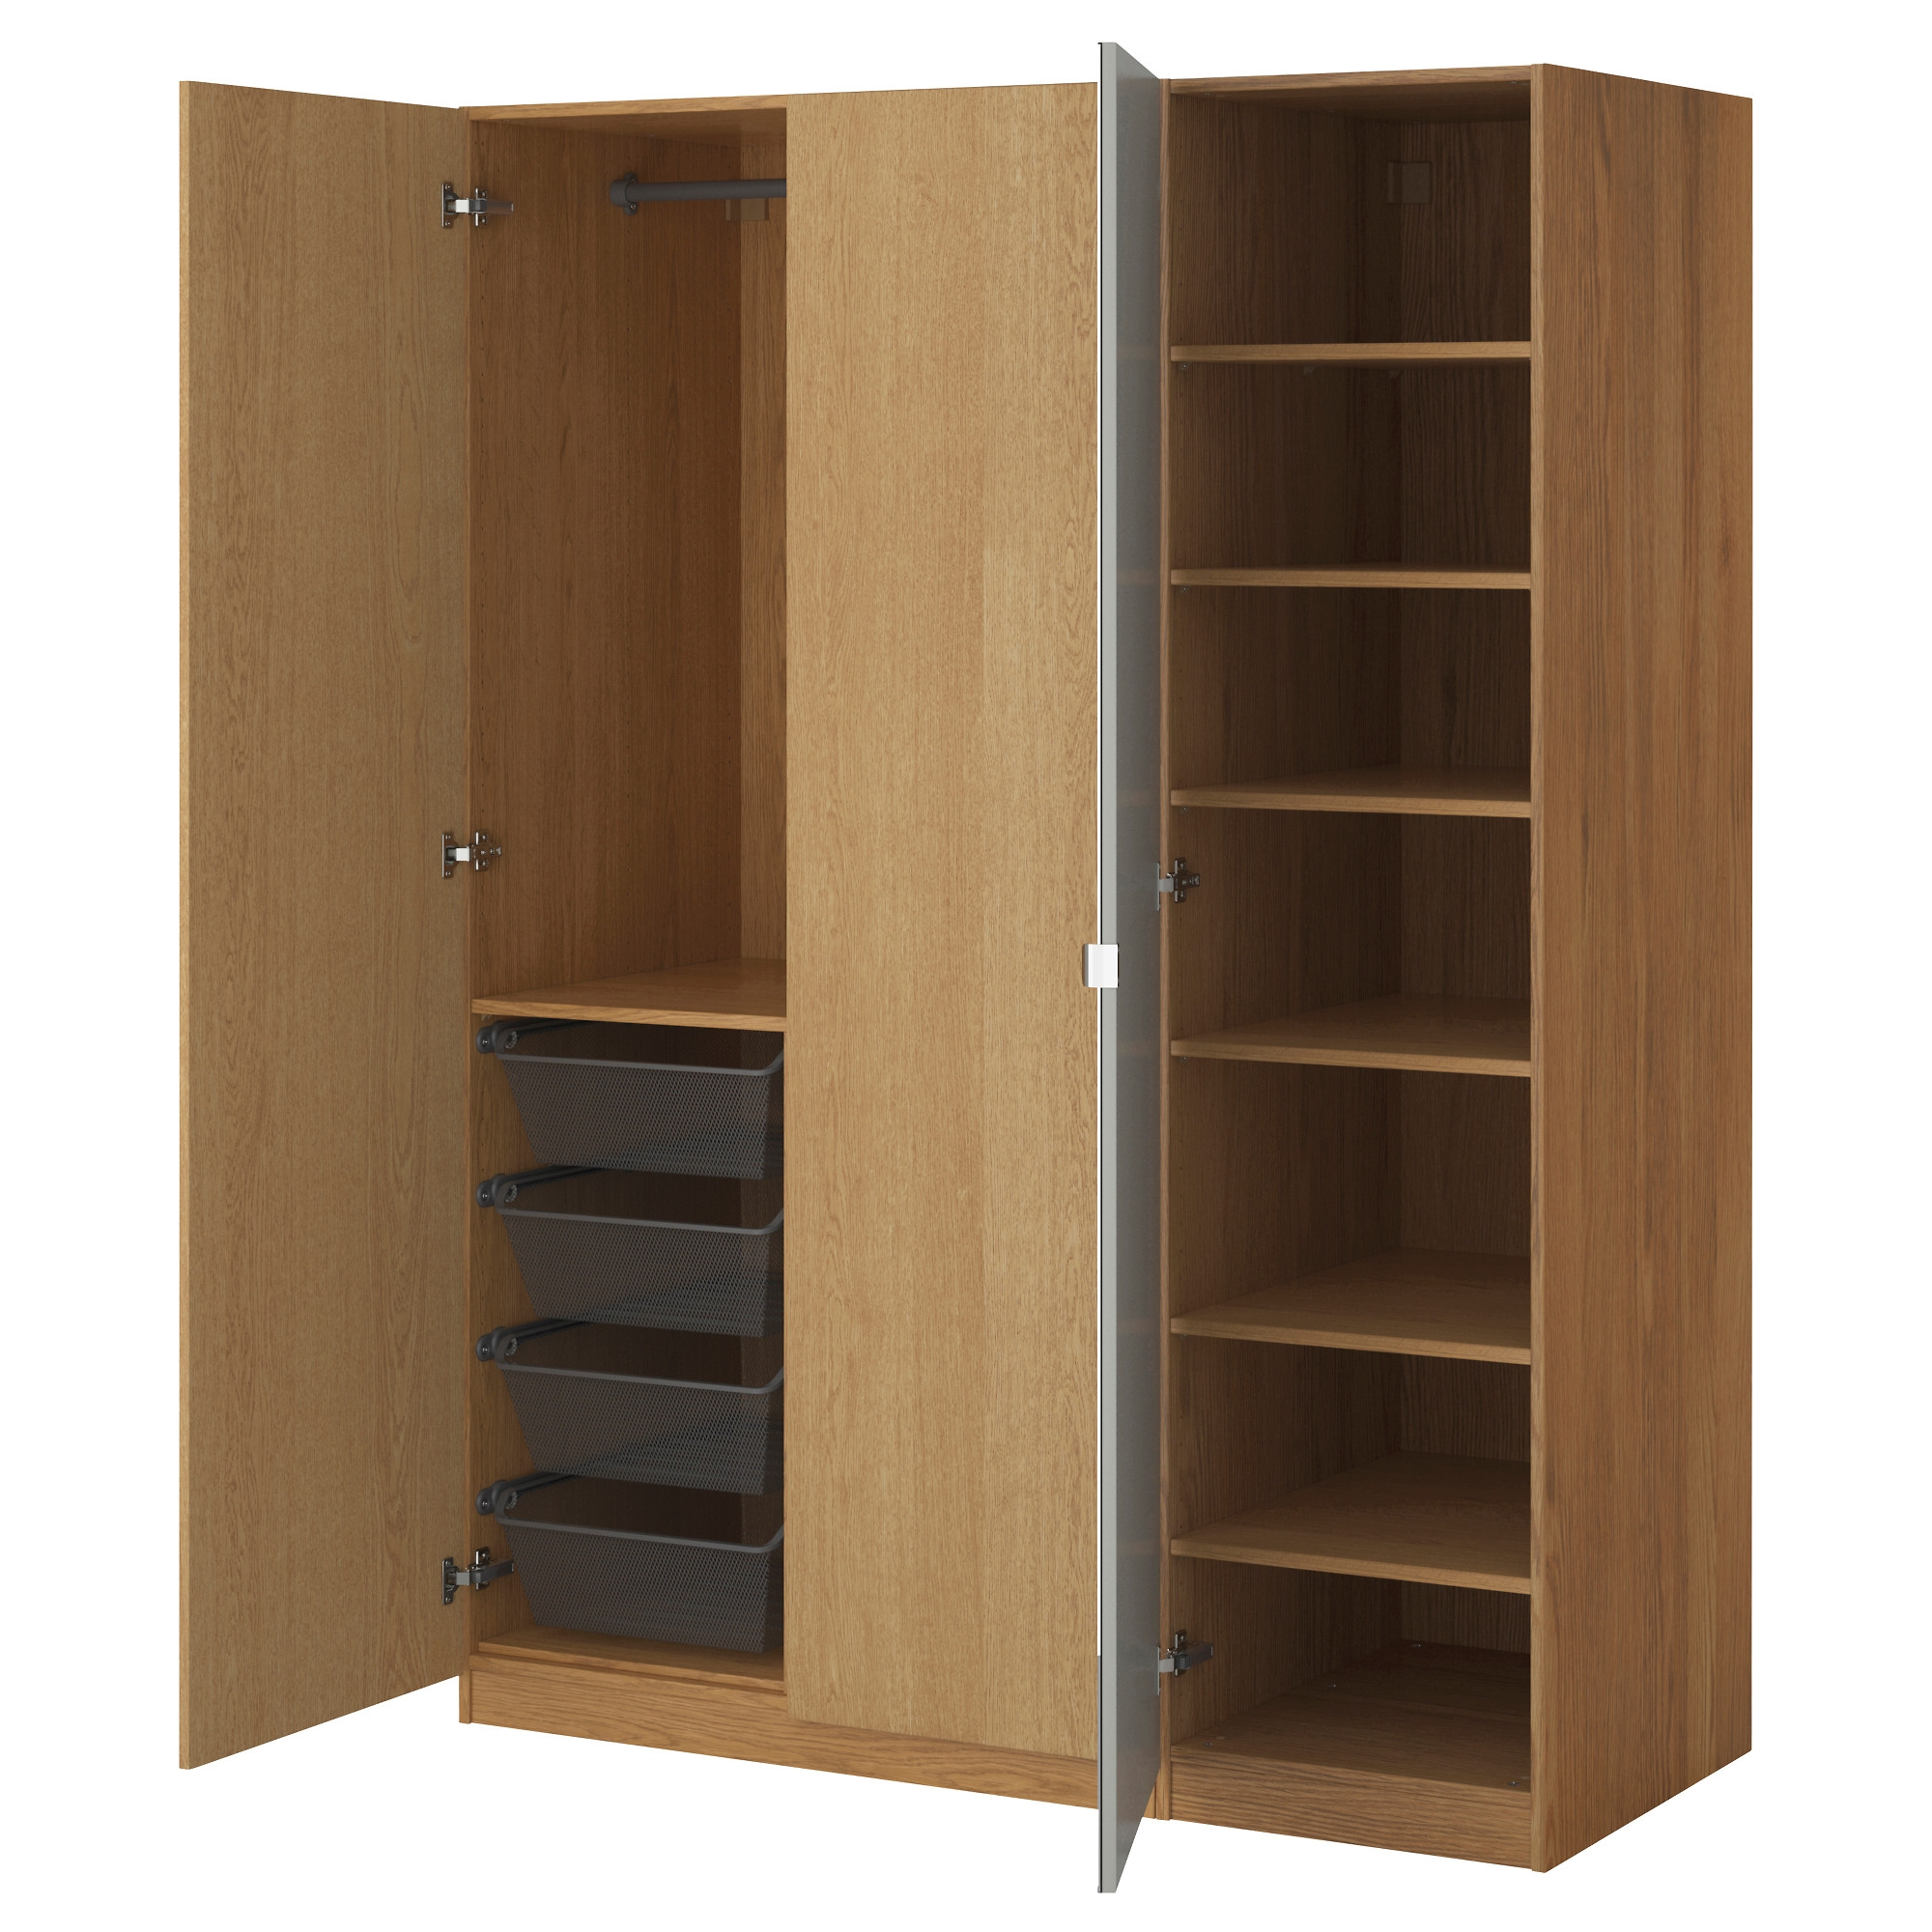 Storage Elegant Bedroom Cabinet Design With Armoire Ikea